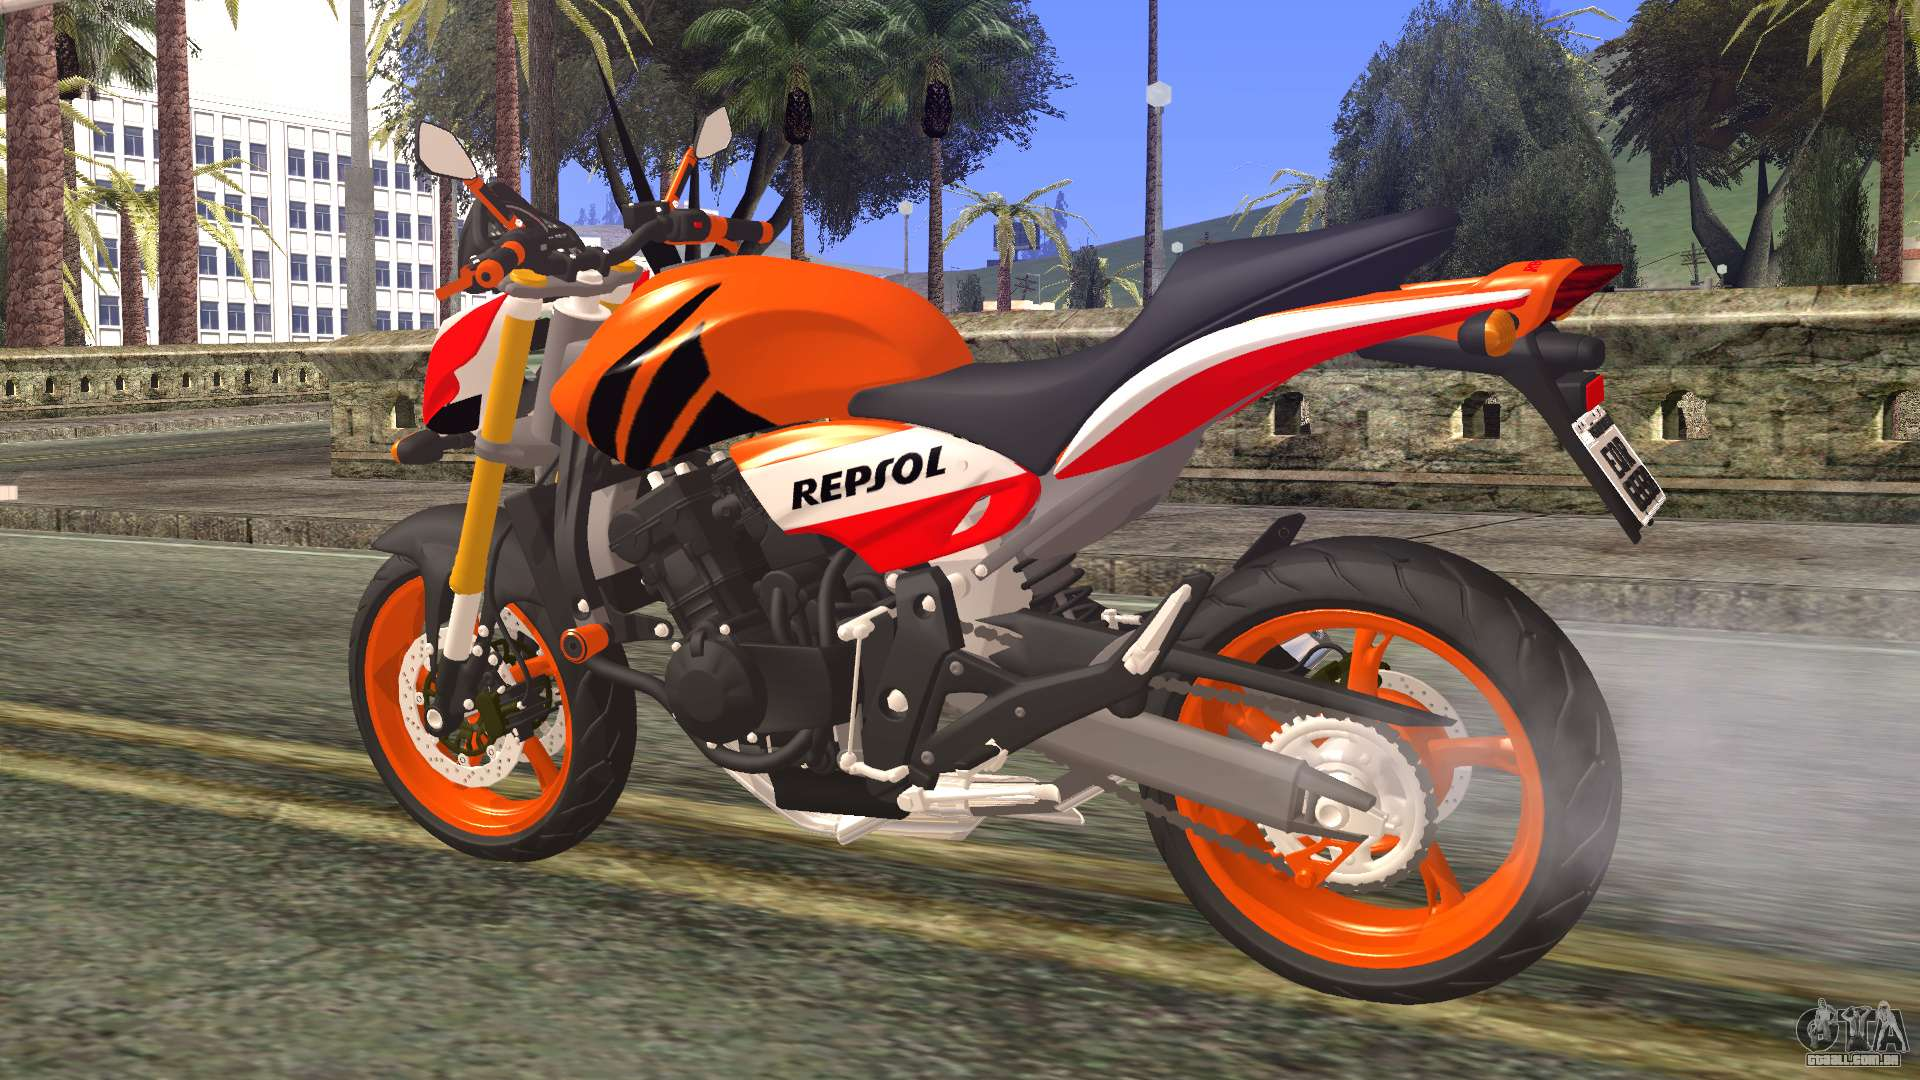 honda hornet repsol 2010 para gta san andreas. Black Bedroom Furniture Sets. Home Design Ideas